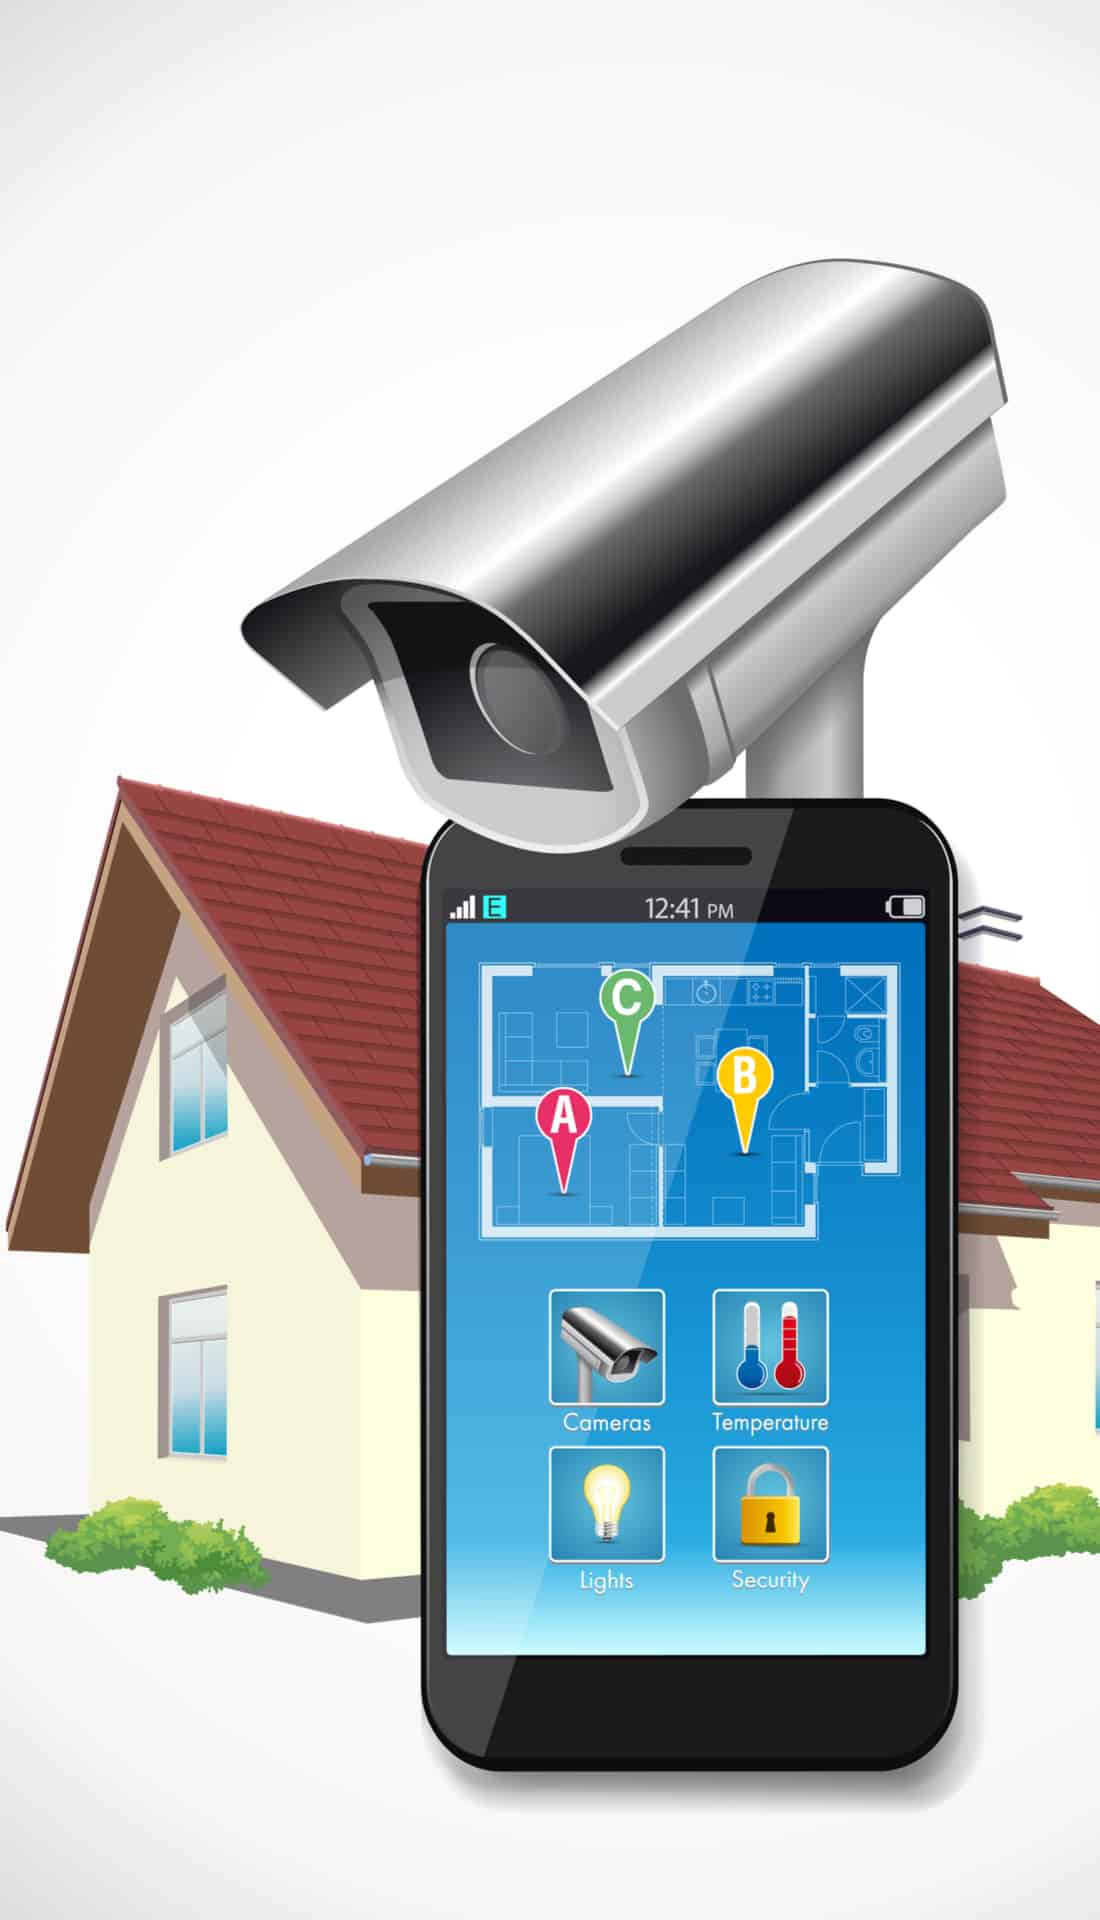 Smart phone connected to security camera